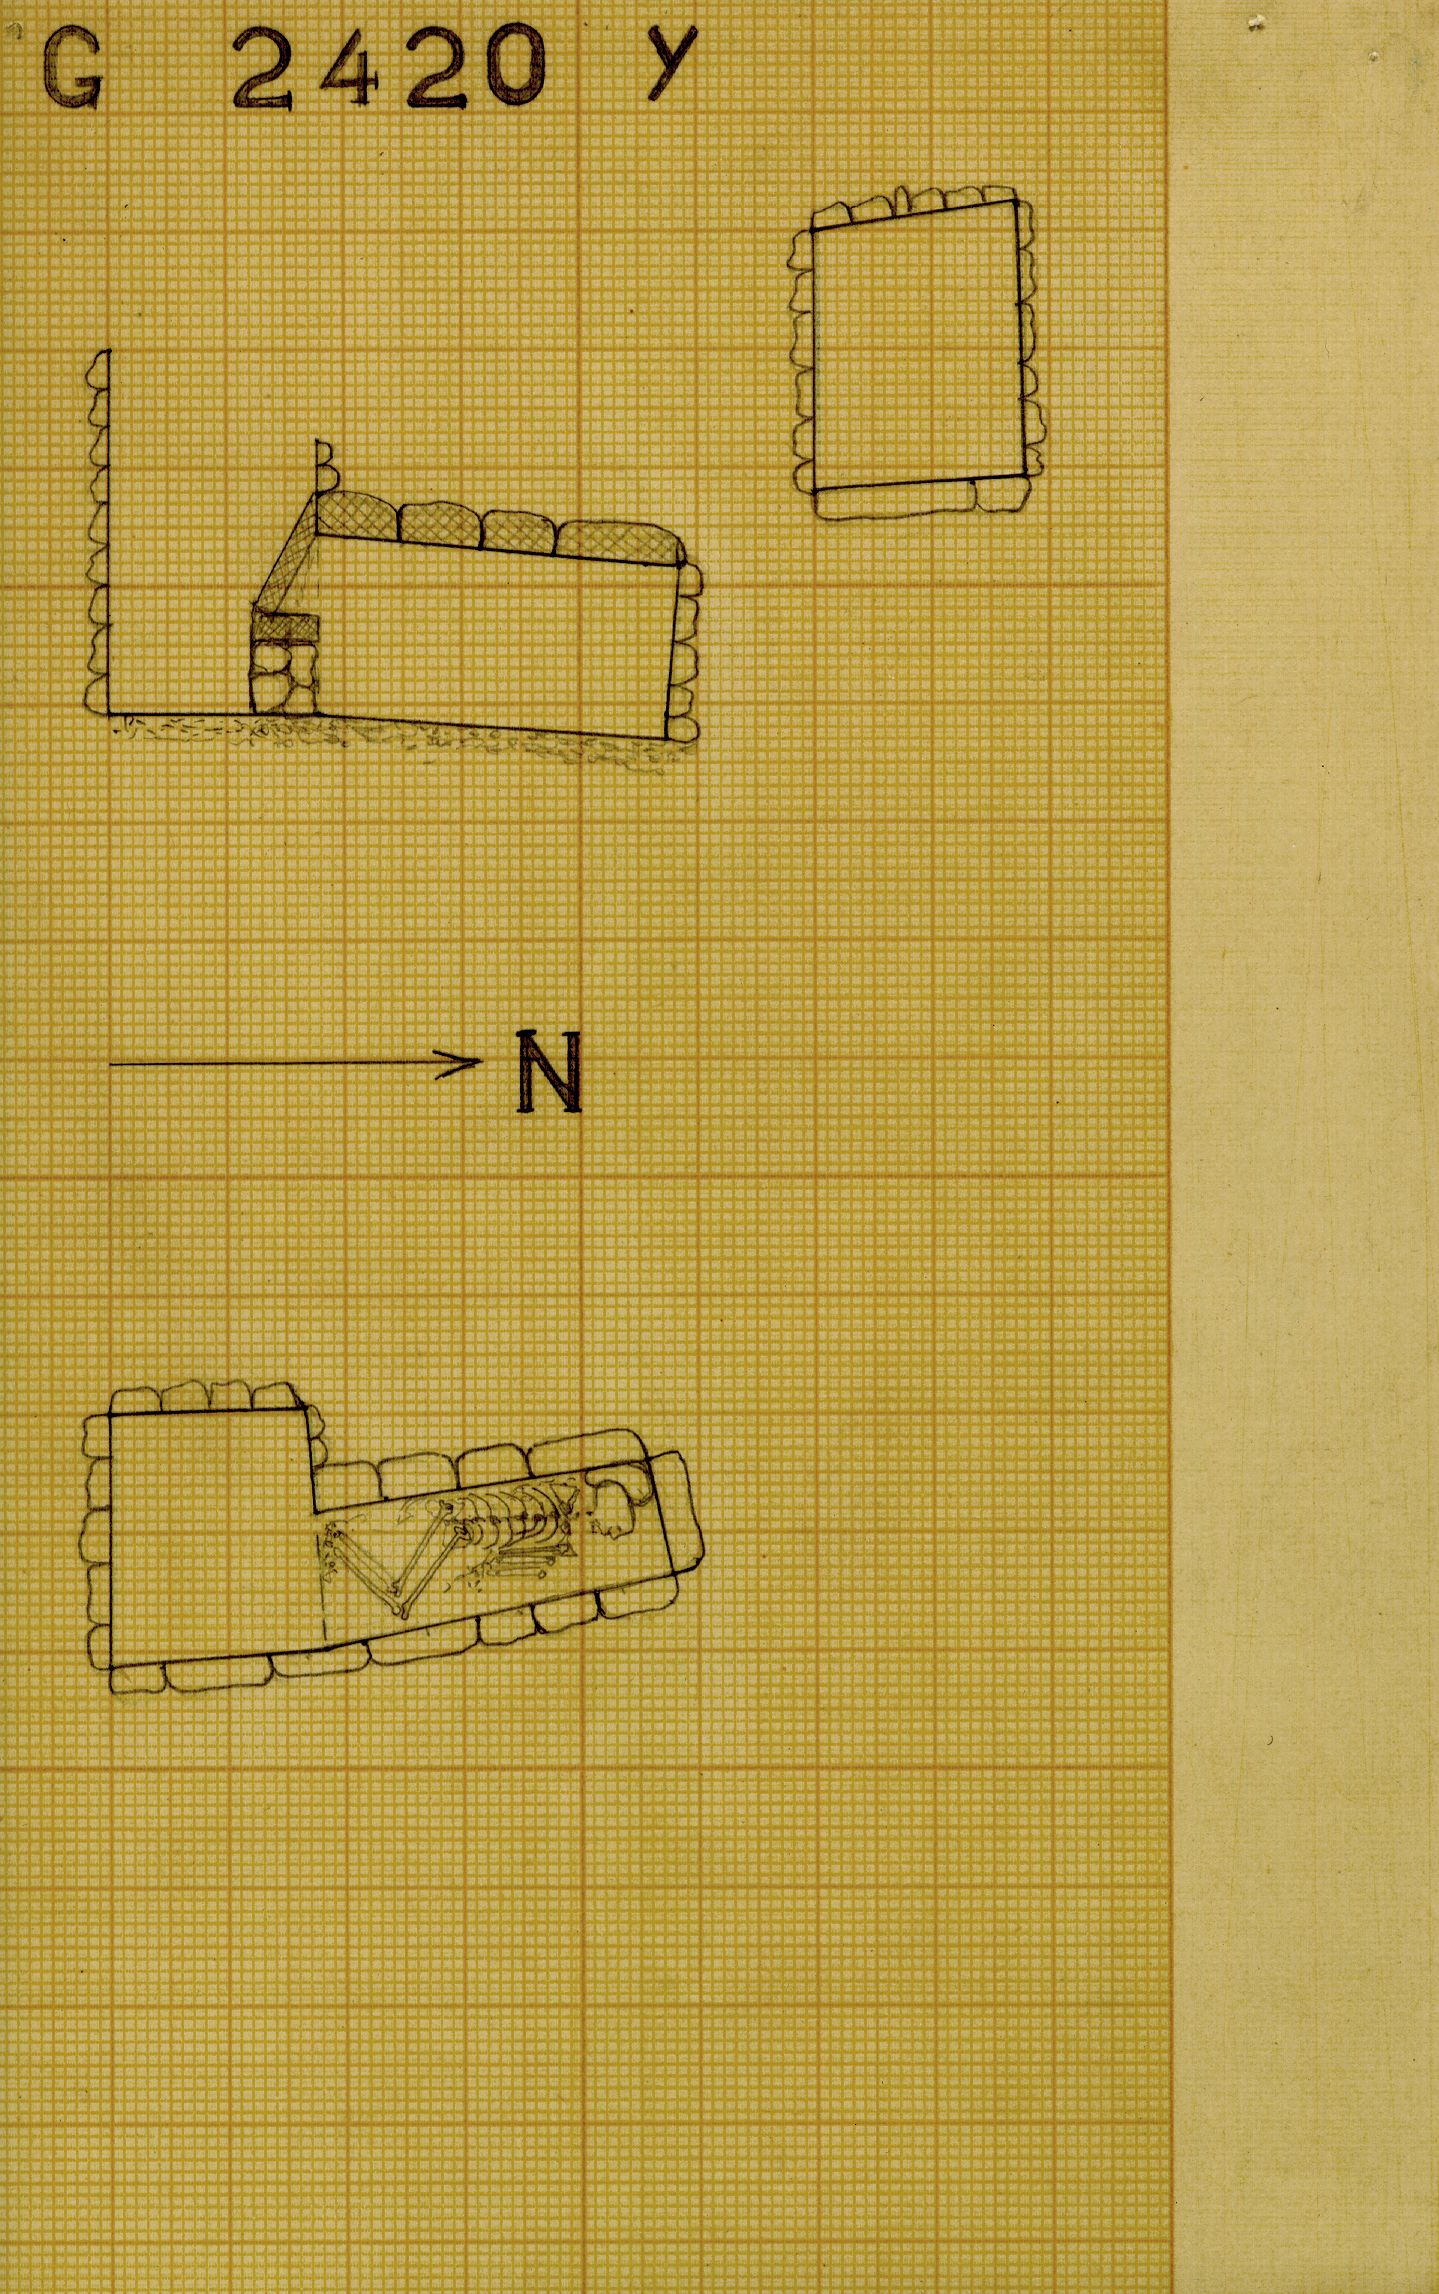 Maps and plans: G 2420, Shaft Y